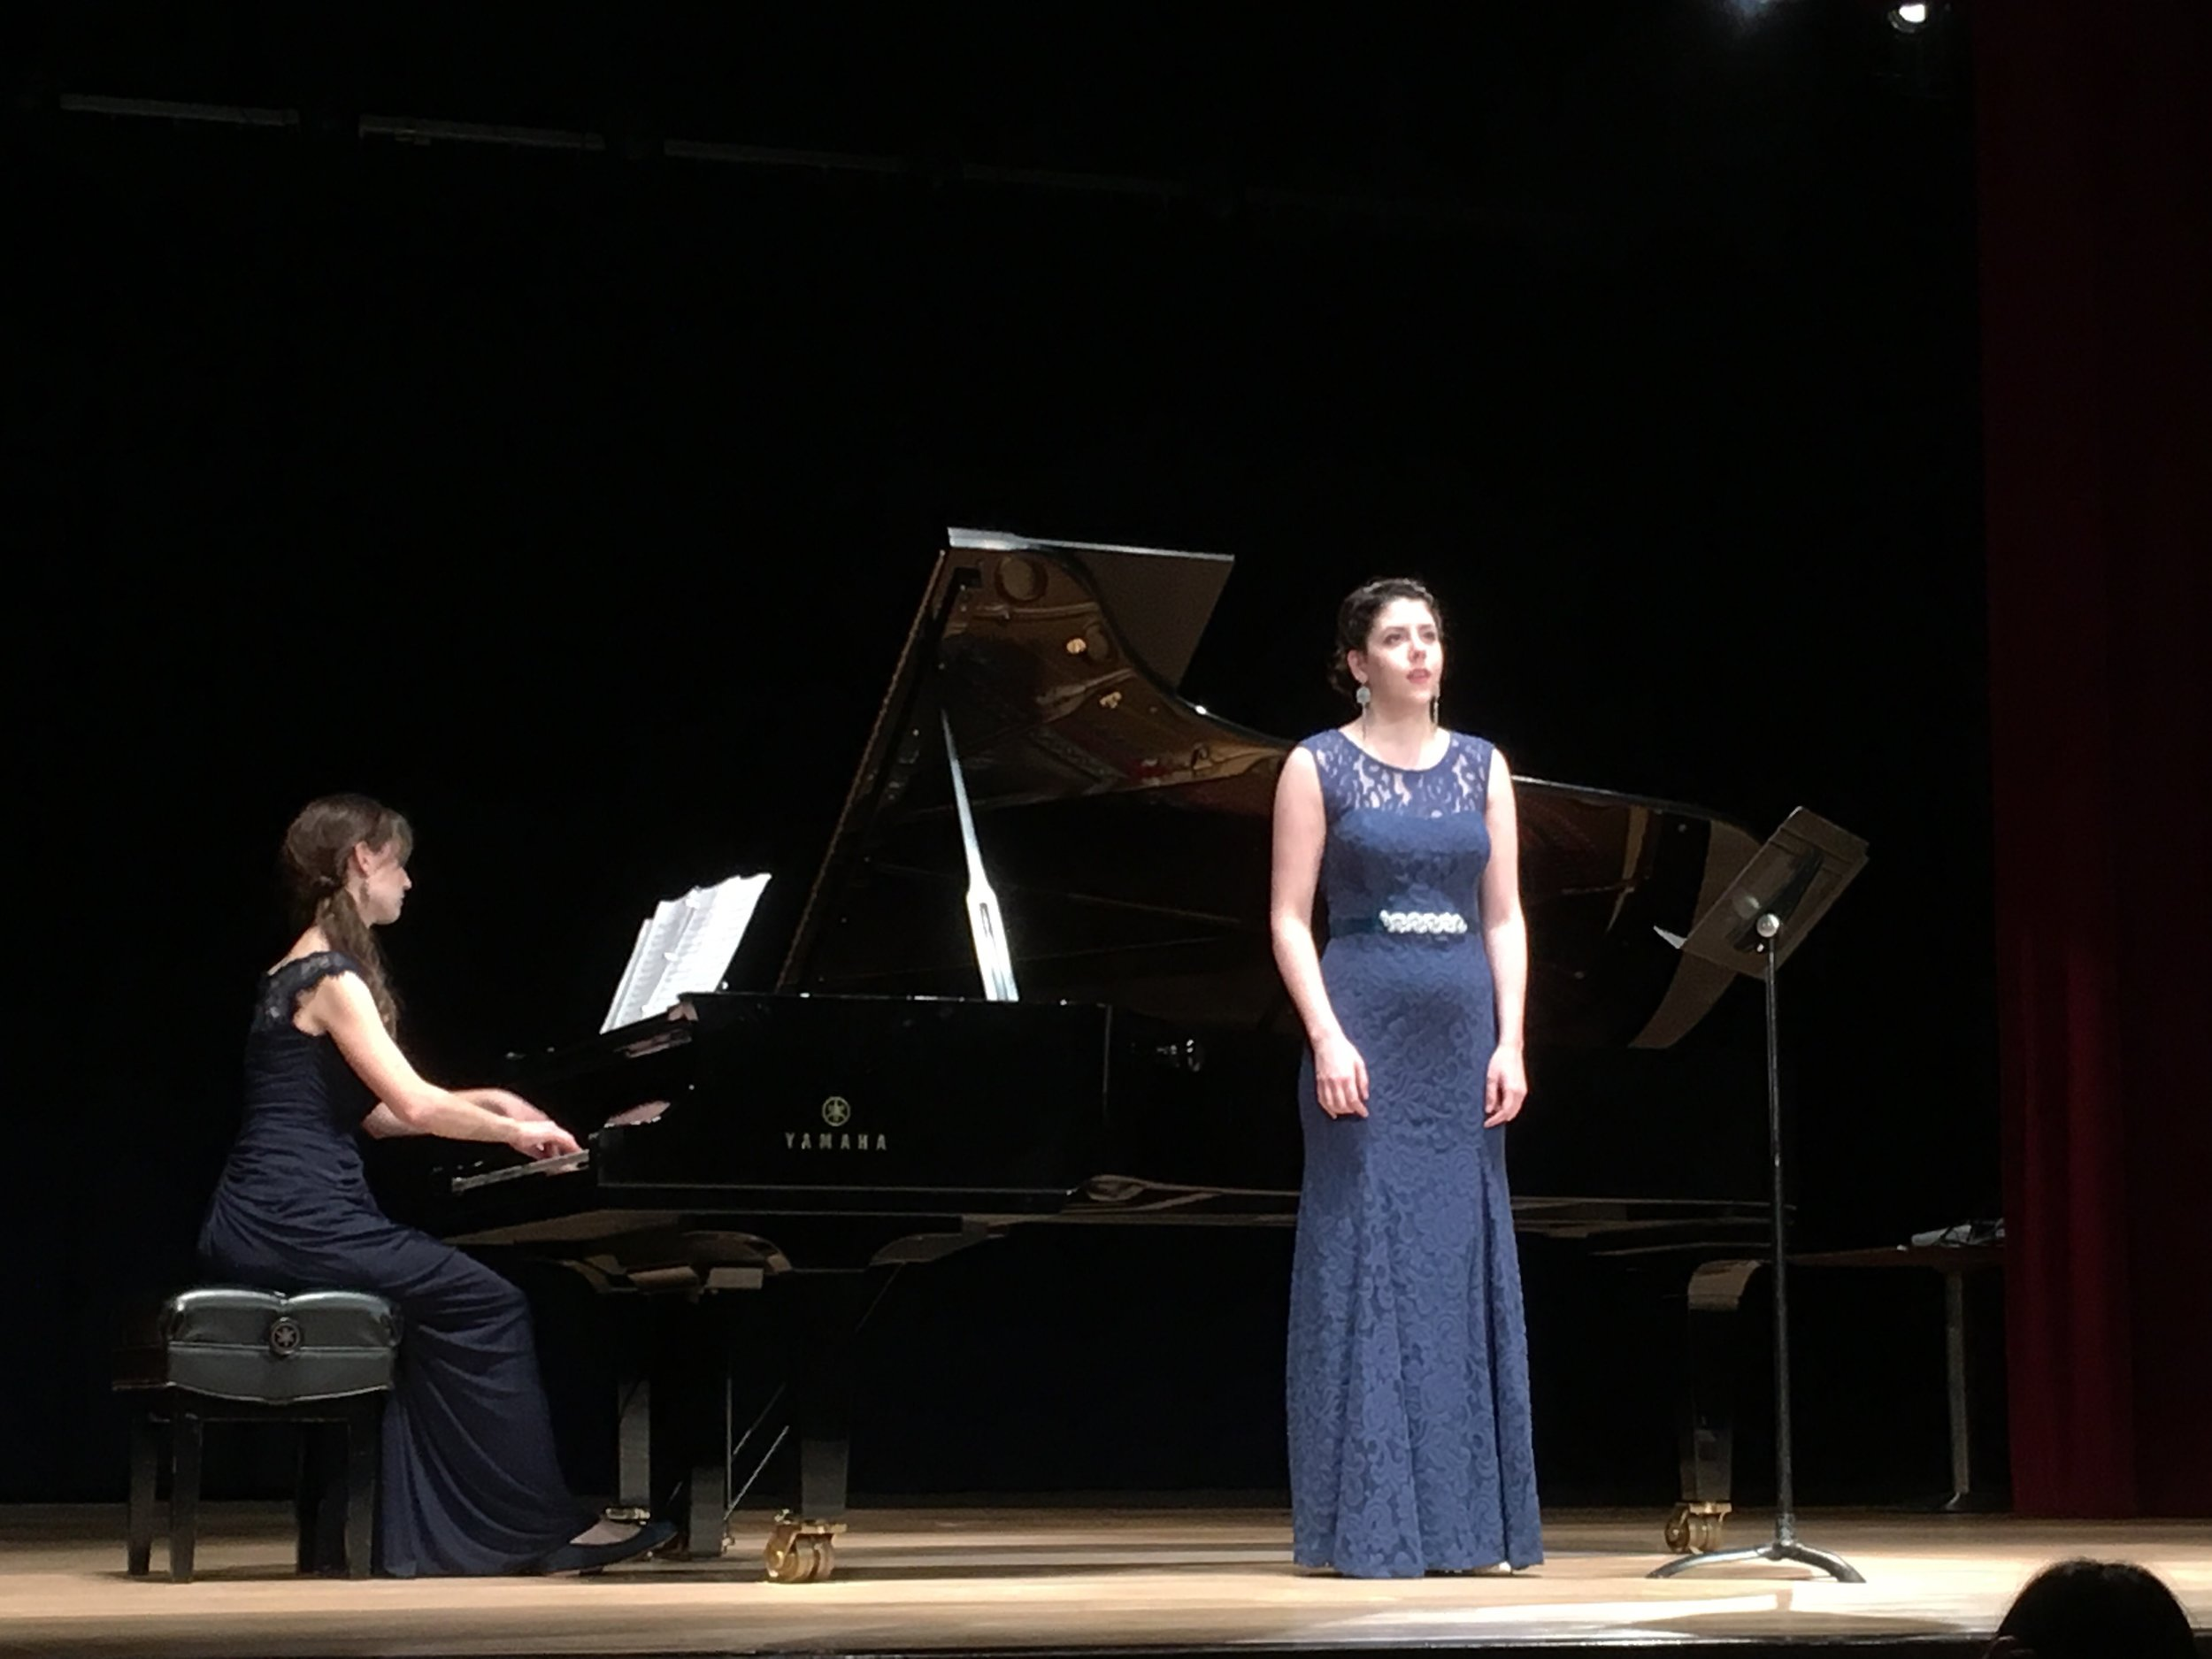 Performing with Jean Elder at the Yamaha Music School of Boston Faculty Recital (2016). Photo by Paul Sayed.